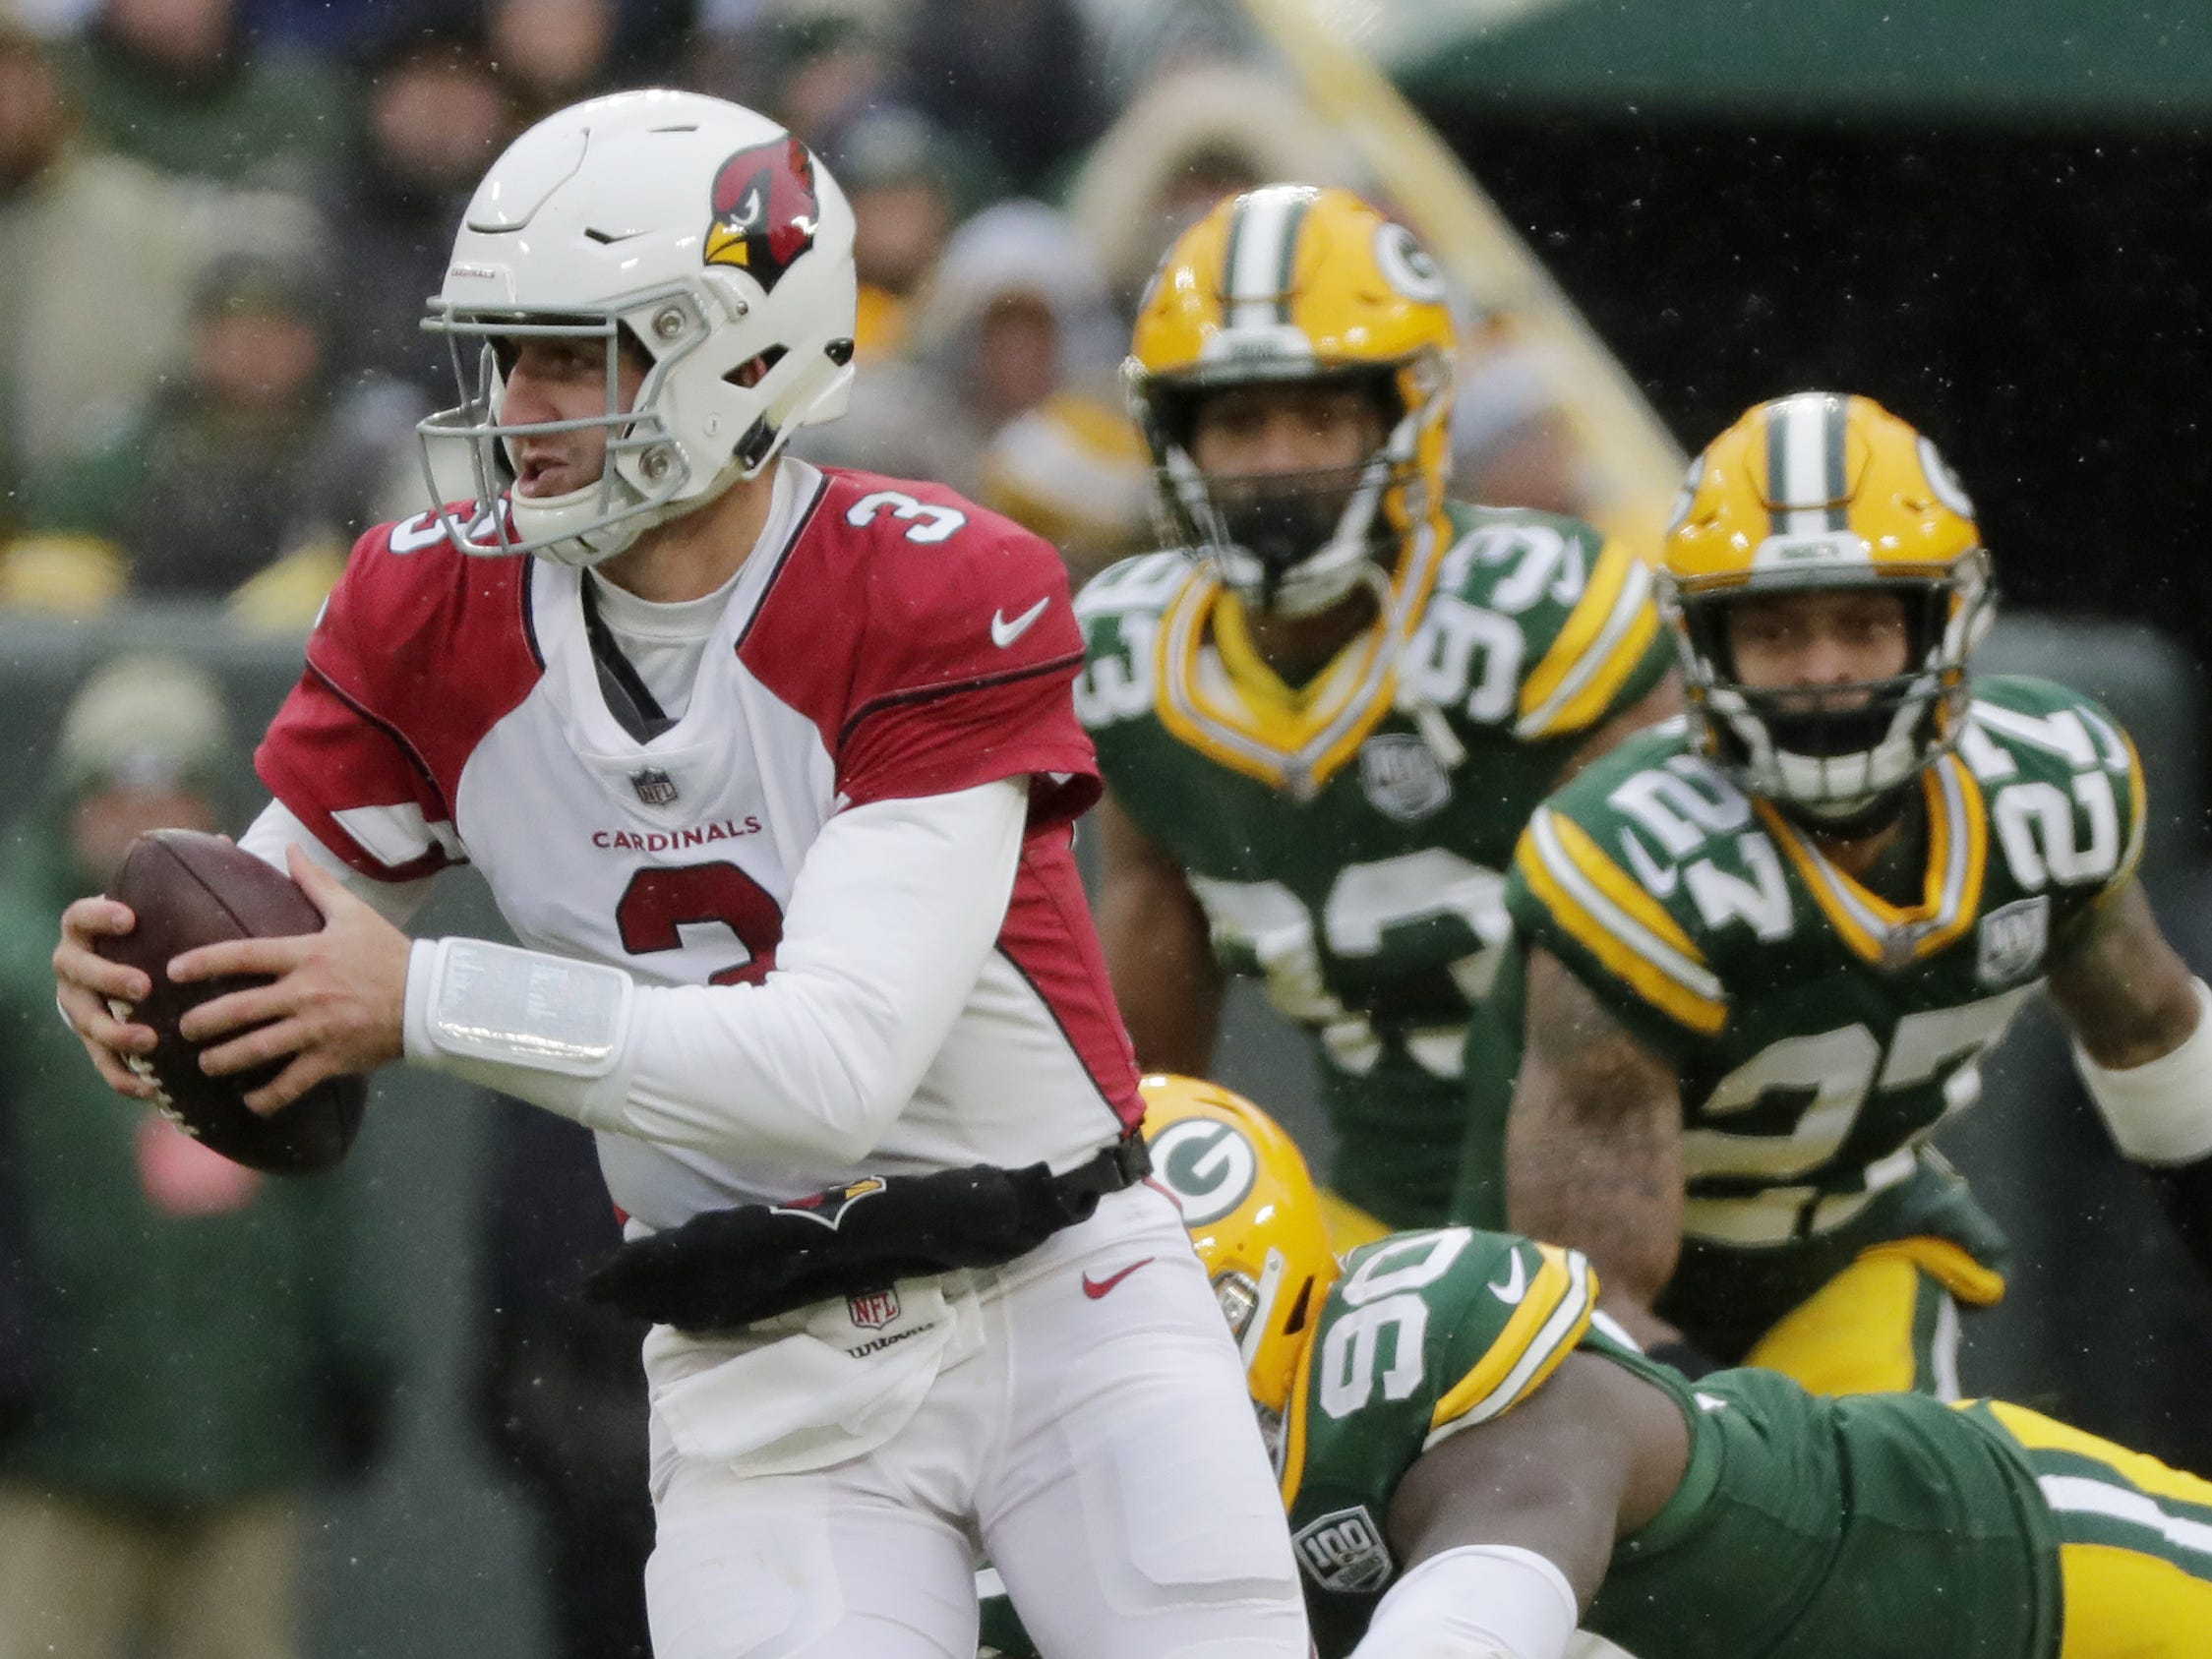 Arizona Cardinals quarterback Josh Rosen (3) escapes pressure by Green Bay Packers defensive tackle Montravius Adams (90) in the third quarter at Lambeau Field on Sunday, December 2, 2018 in Green Bay, Wis.